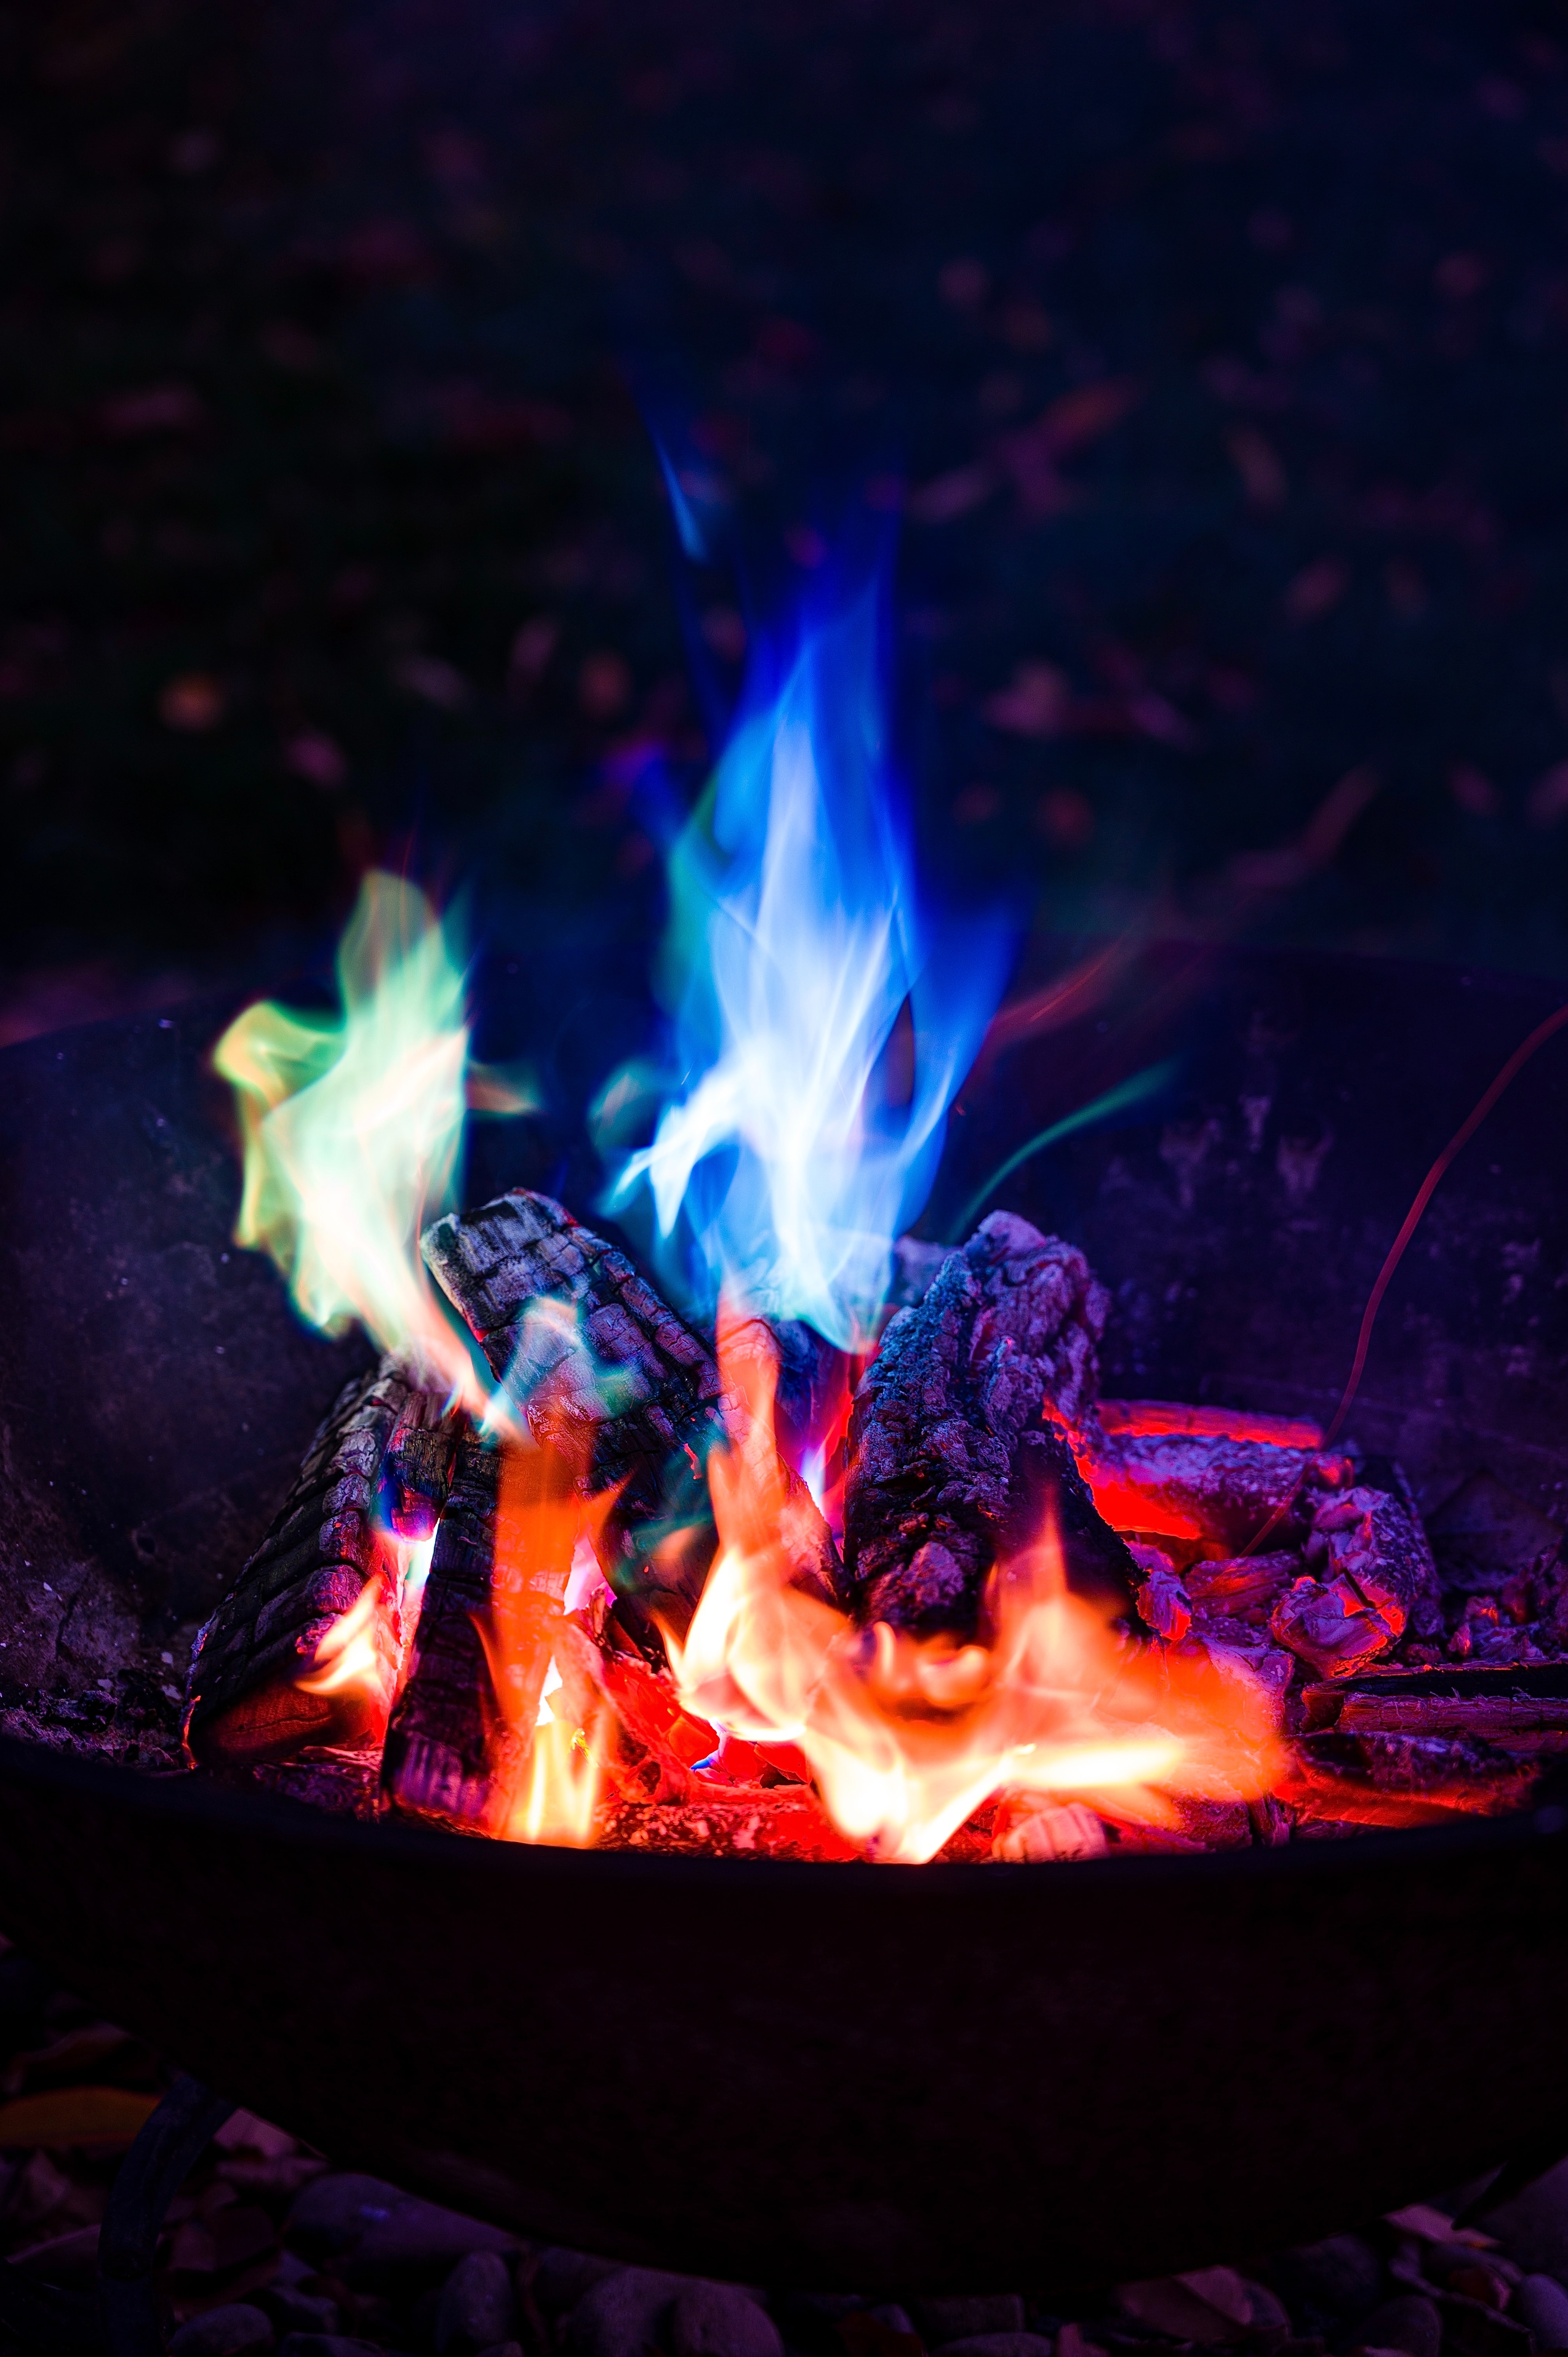 81050 Screensavers and Wallpapers Bonfire for phone. Download Fire, Bonfire, Night, Dark, Flame, Camping, Campsite pictures for free